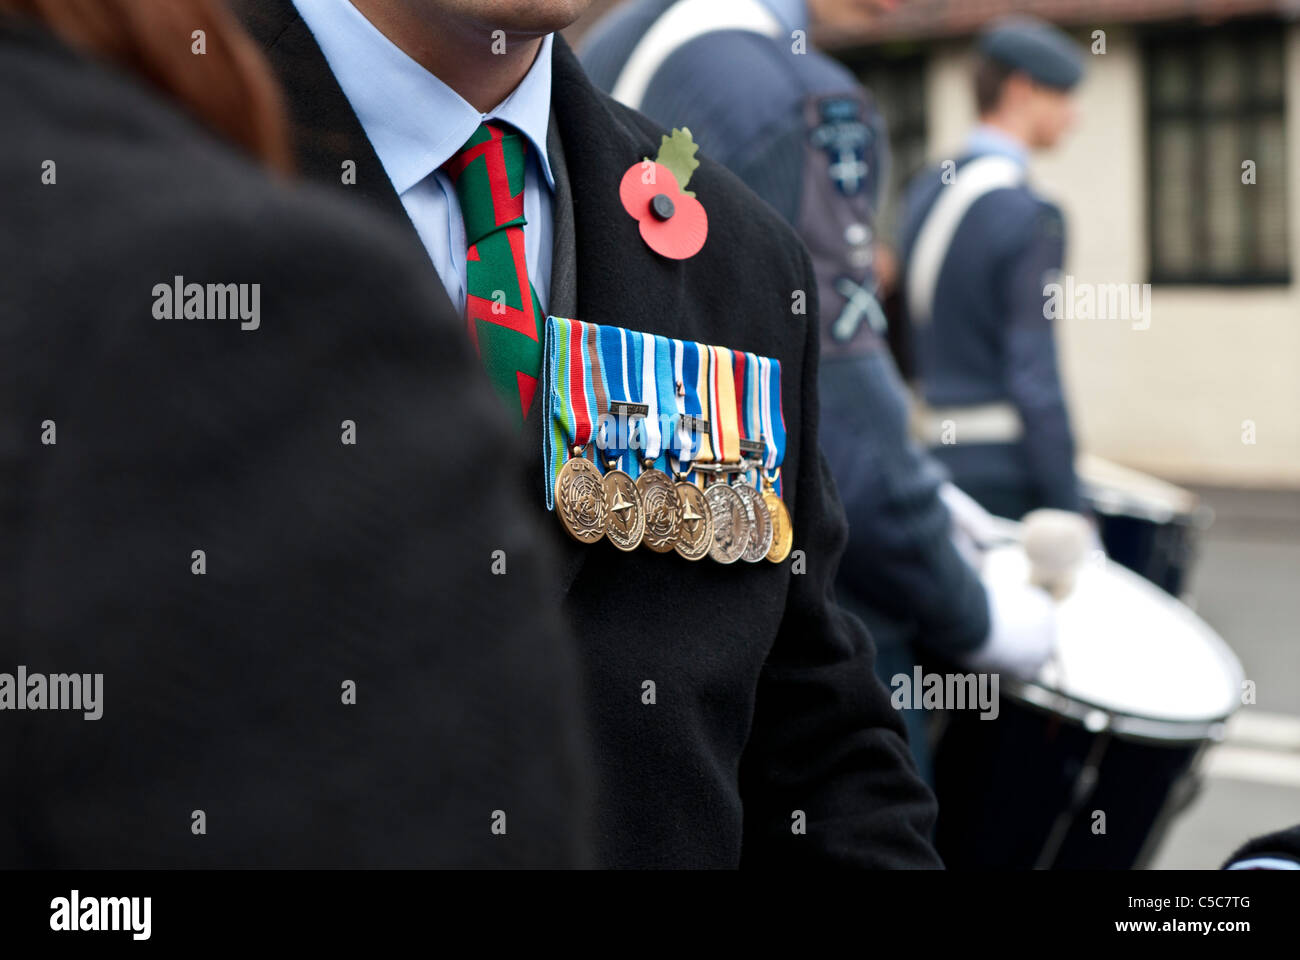 Ex Soldier Stock Photos & Ex Soldier Stock Images - Alamy